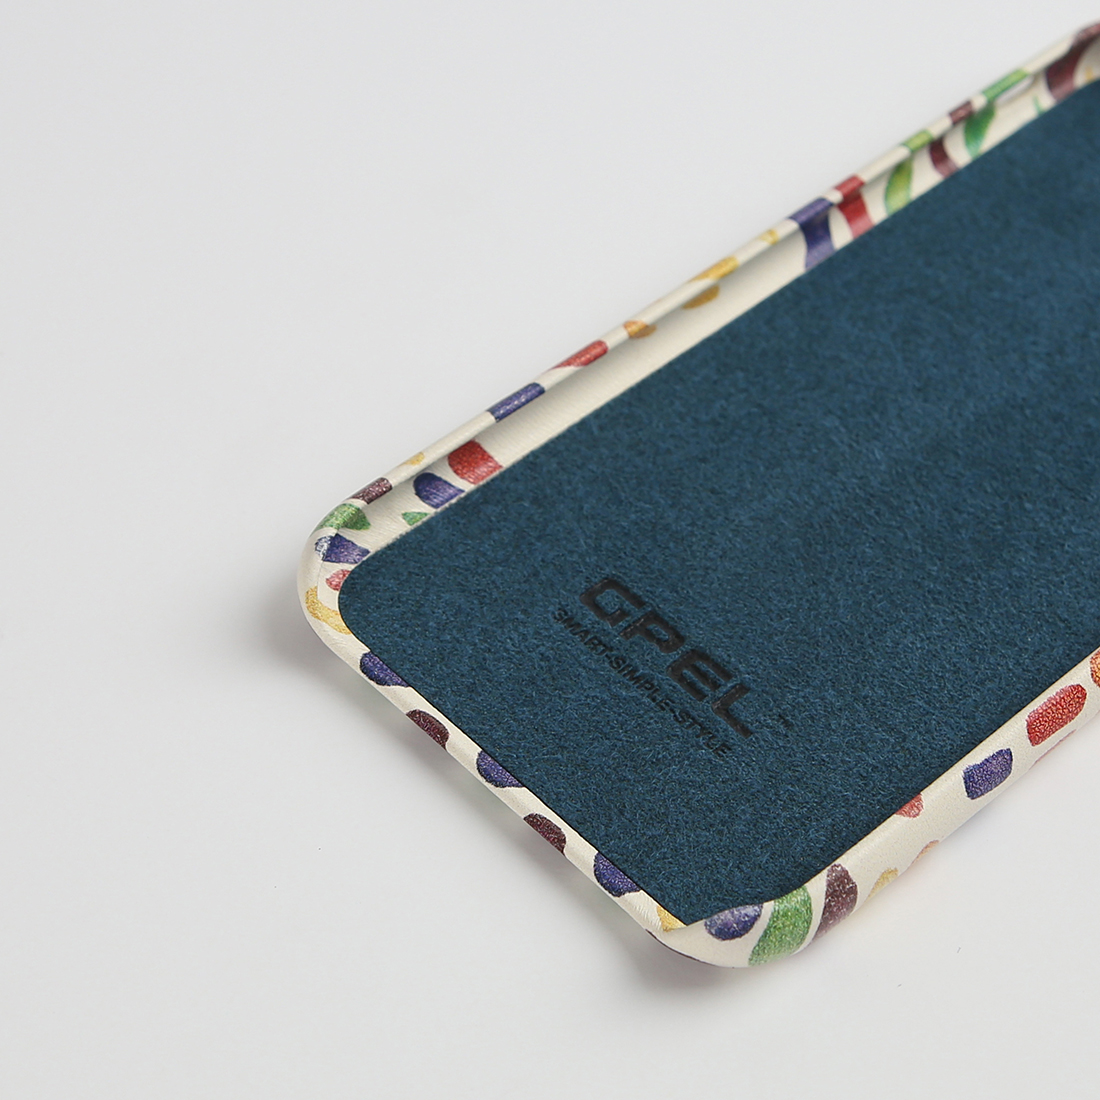 GPEL Leather Case